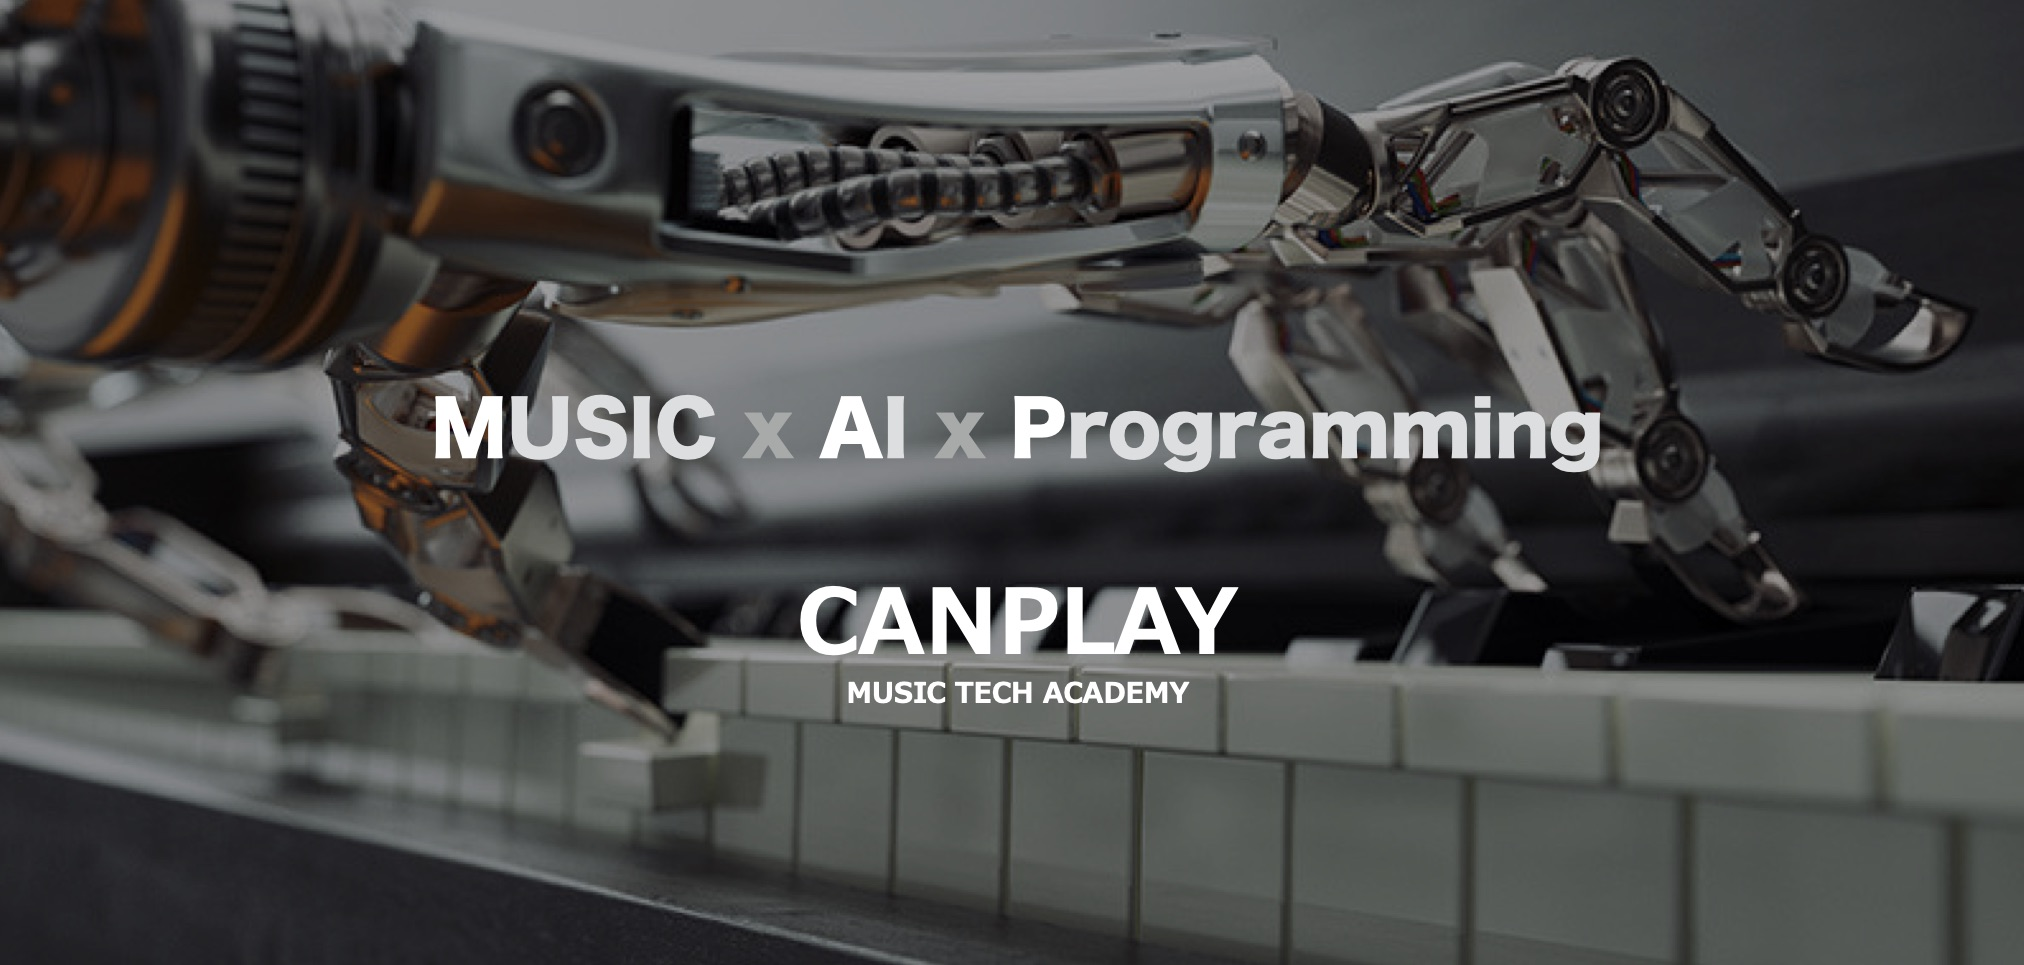 AI MUSIC SOUND PROGRAMMING MEDIA ART & CREATIVE CODING